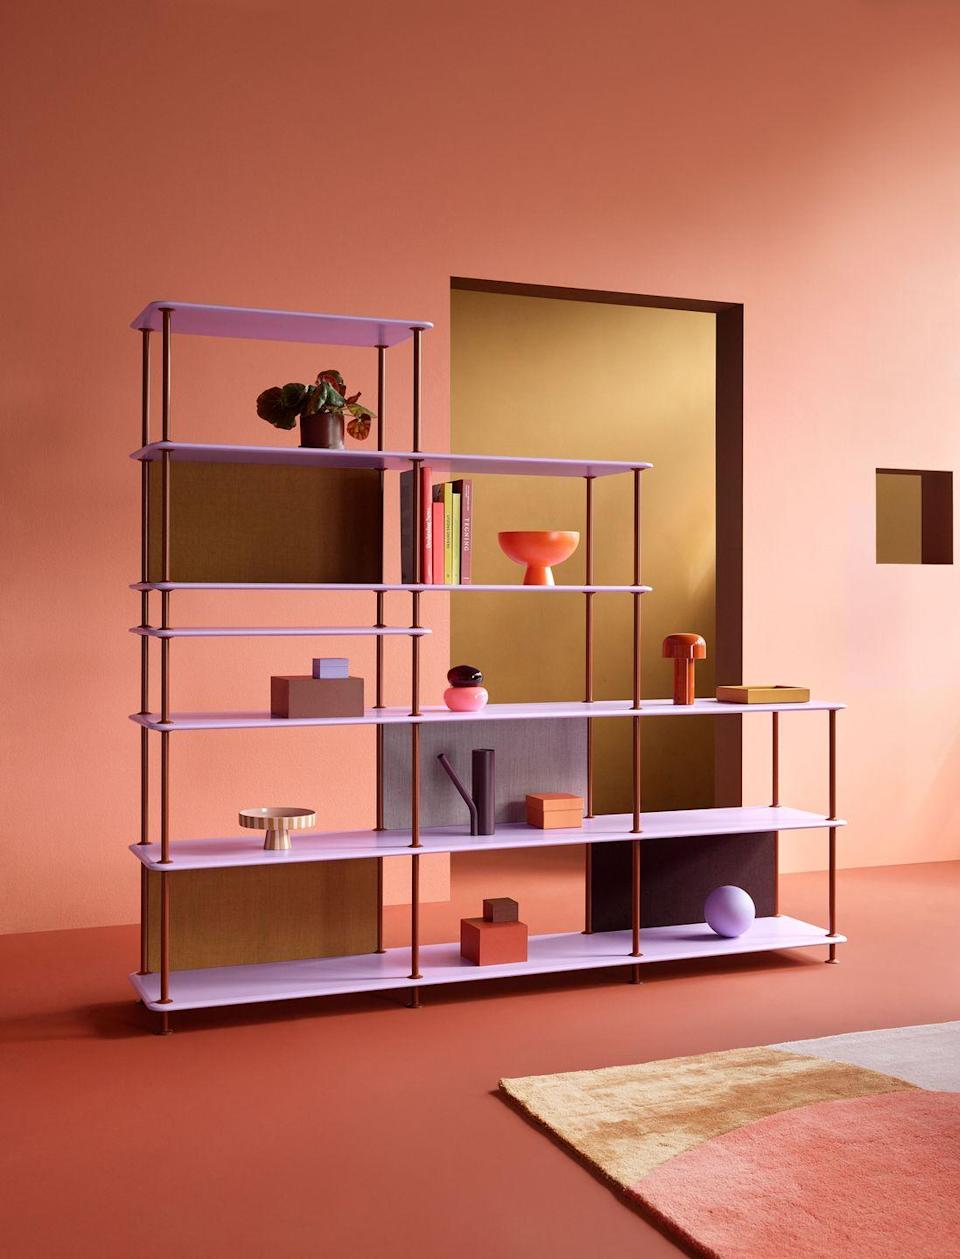 """<p>Danish brand Montana is known for its colourful modular storage systems, so its new collaboration with Swedish photographer and colourist Tekla Evelina Severin is a stroke of genius. Severin has introduced two on-trend colours to the brand's palette: pastel 'Iris' and earthy 'Masala', which are available to mix and match on the 'Montana Free' collection of shelving units, which come in various sizes and dimensions. From £1,568 <a href=""""https://www.montanafurniture.com/en-gb"""" rel=""""nofollow noopener"""" target=""""_blank"""" data-ylk=""""slk:montanafurniture.com"""" class=""""link rapid-noclick-resp"""">montanafurniture.com</a></p>"""